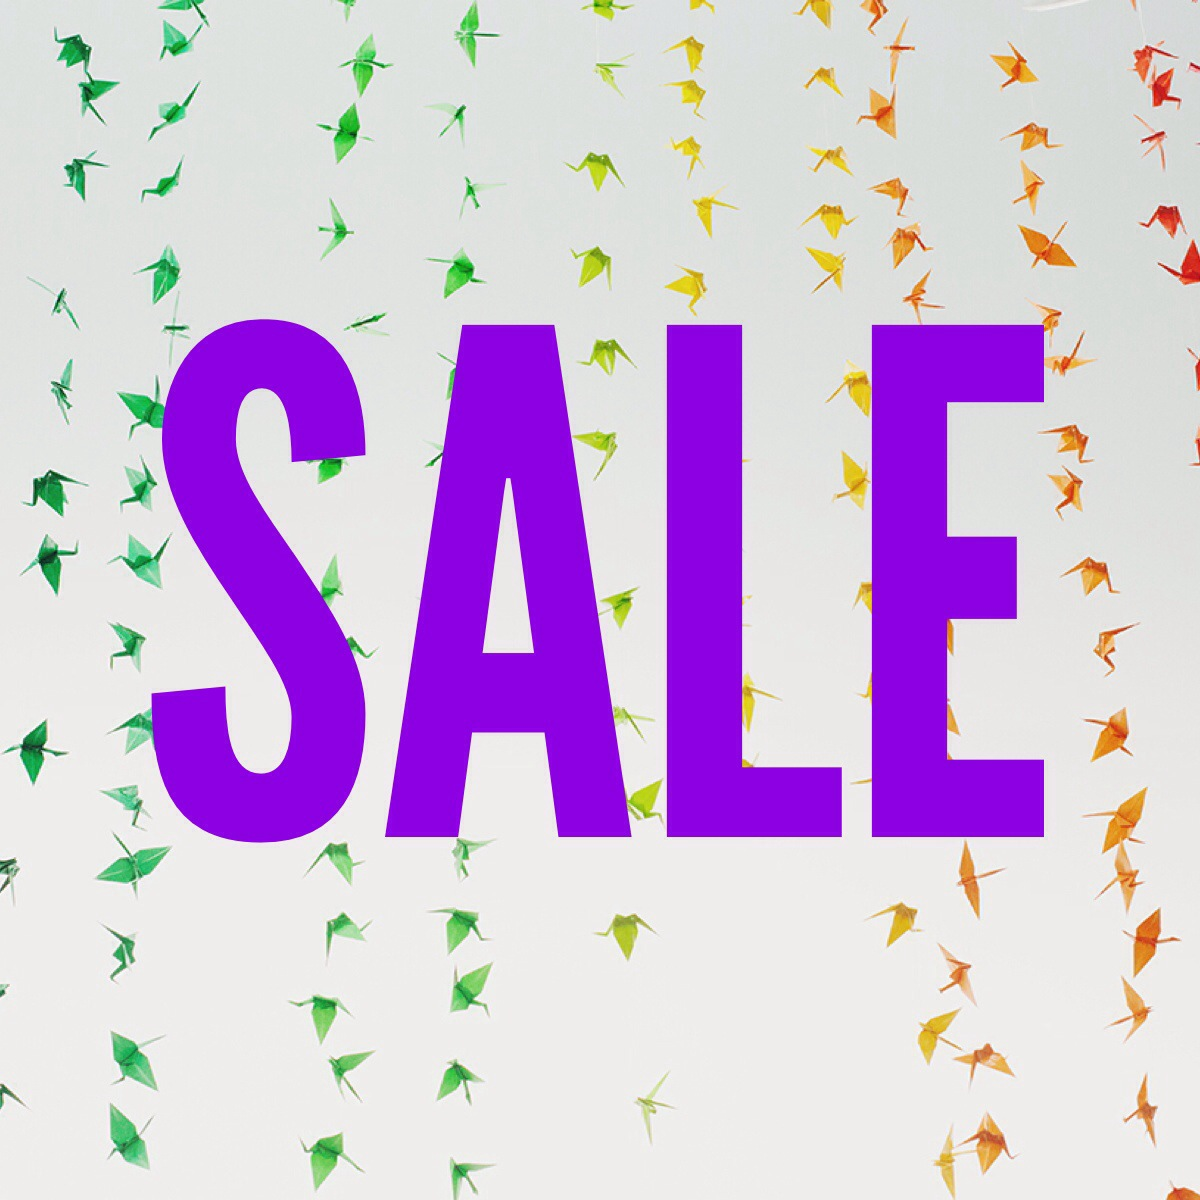 sale | Sale on Handmade Goods at Pop Shop America Online Boutique | Vintage Inspired Fashion, Handmade Jewelry, Quirky Cards, DIY Art and Science Kits, Clothing, T Shirts and More